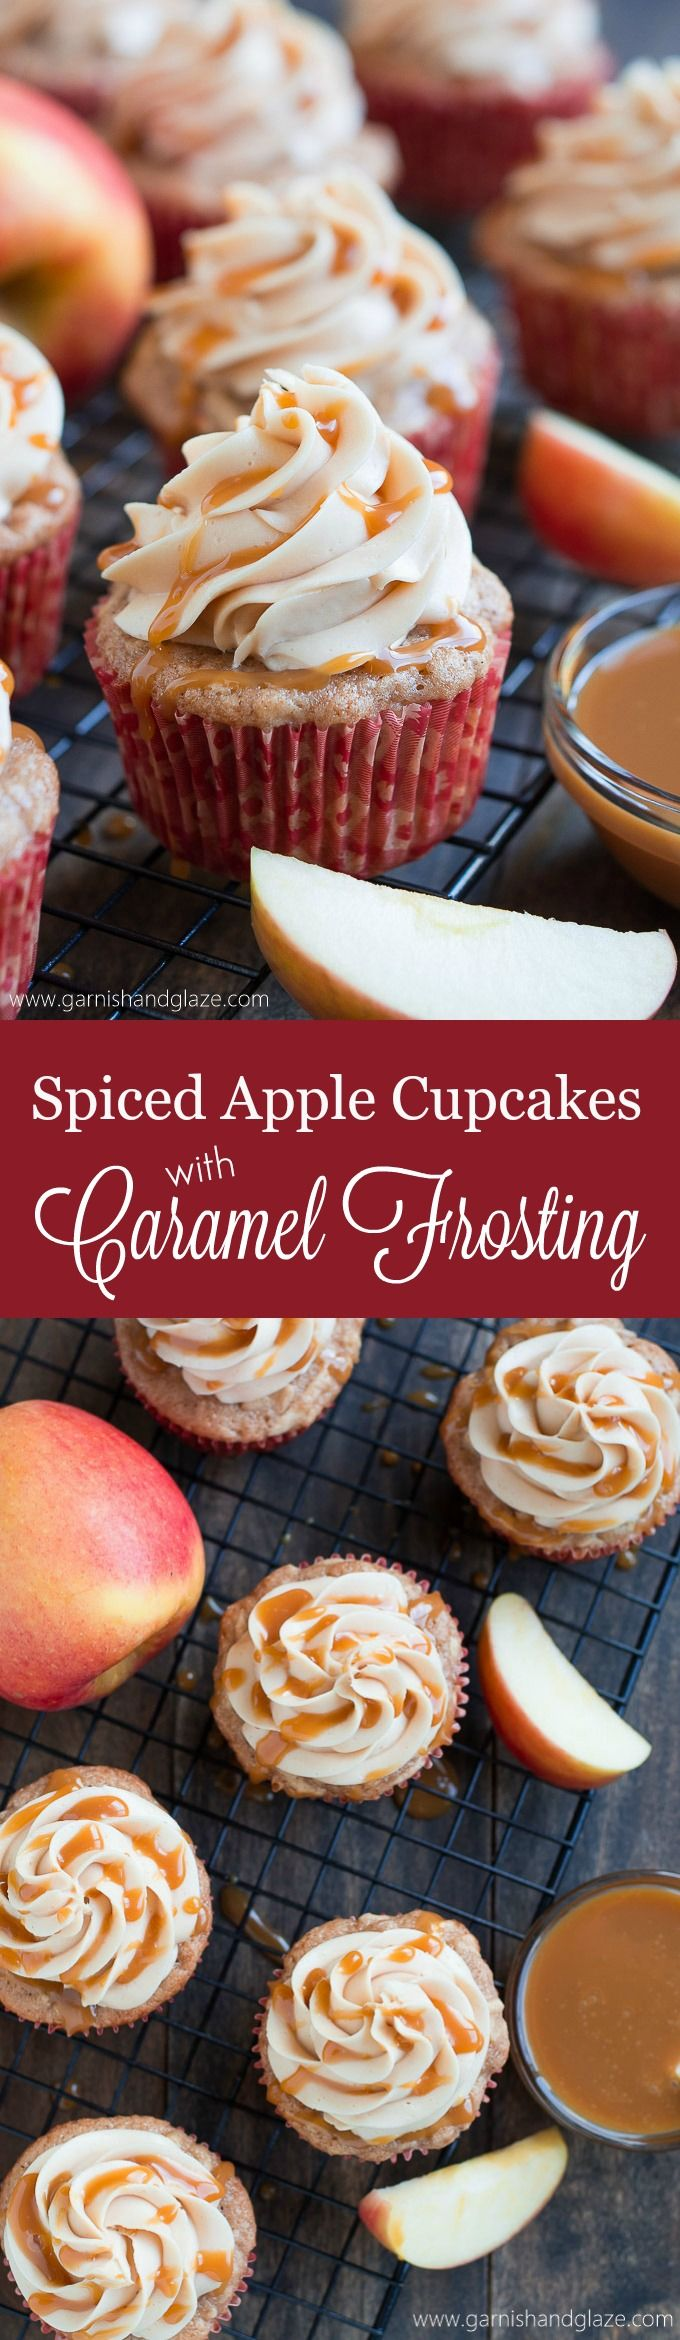 Love caramel and apples? Enjoy them together in these incredibly moist Spiced Apple Cupcakes with Caramel Frosting that is simply heavenly.